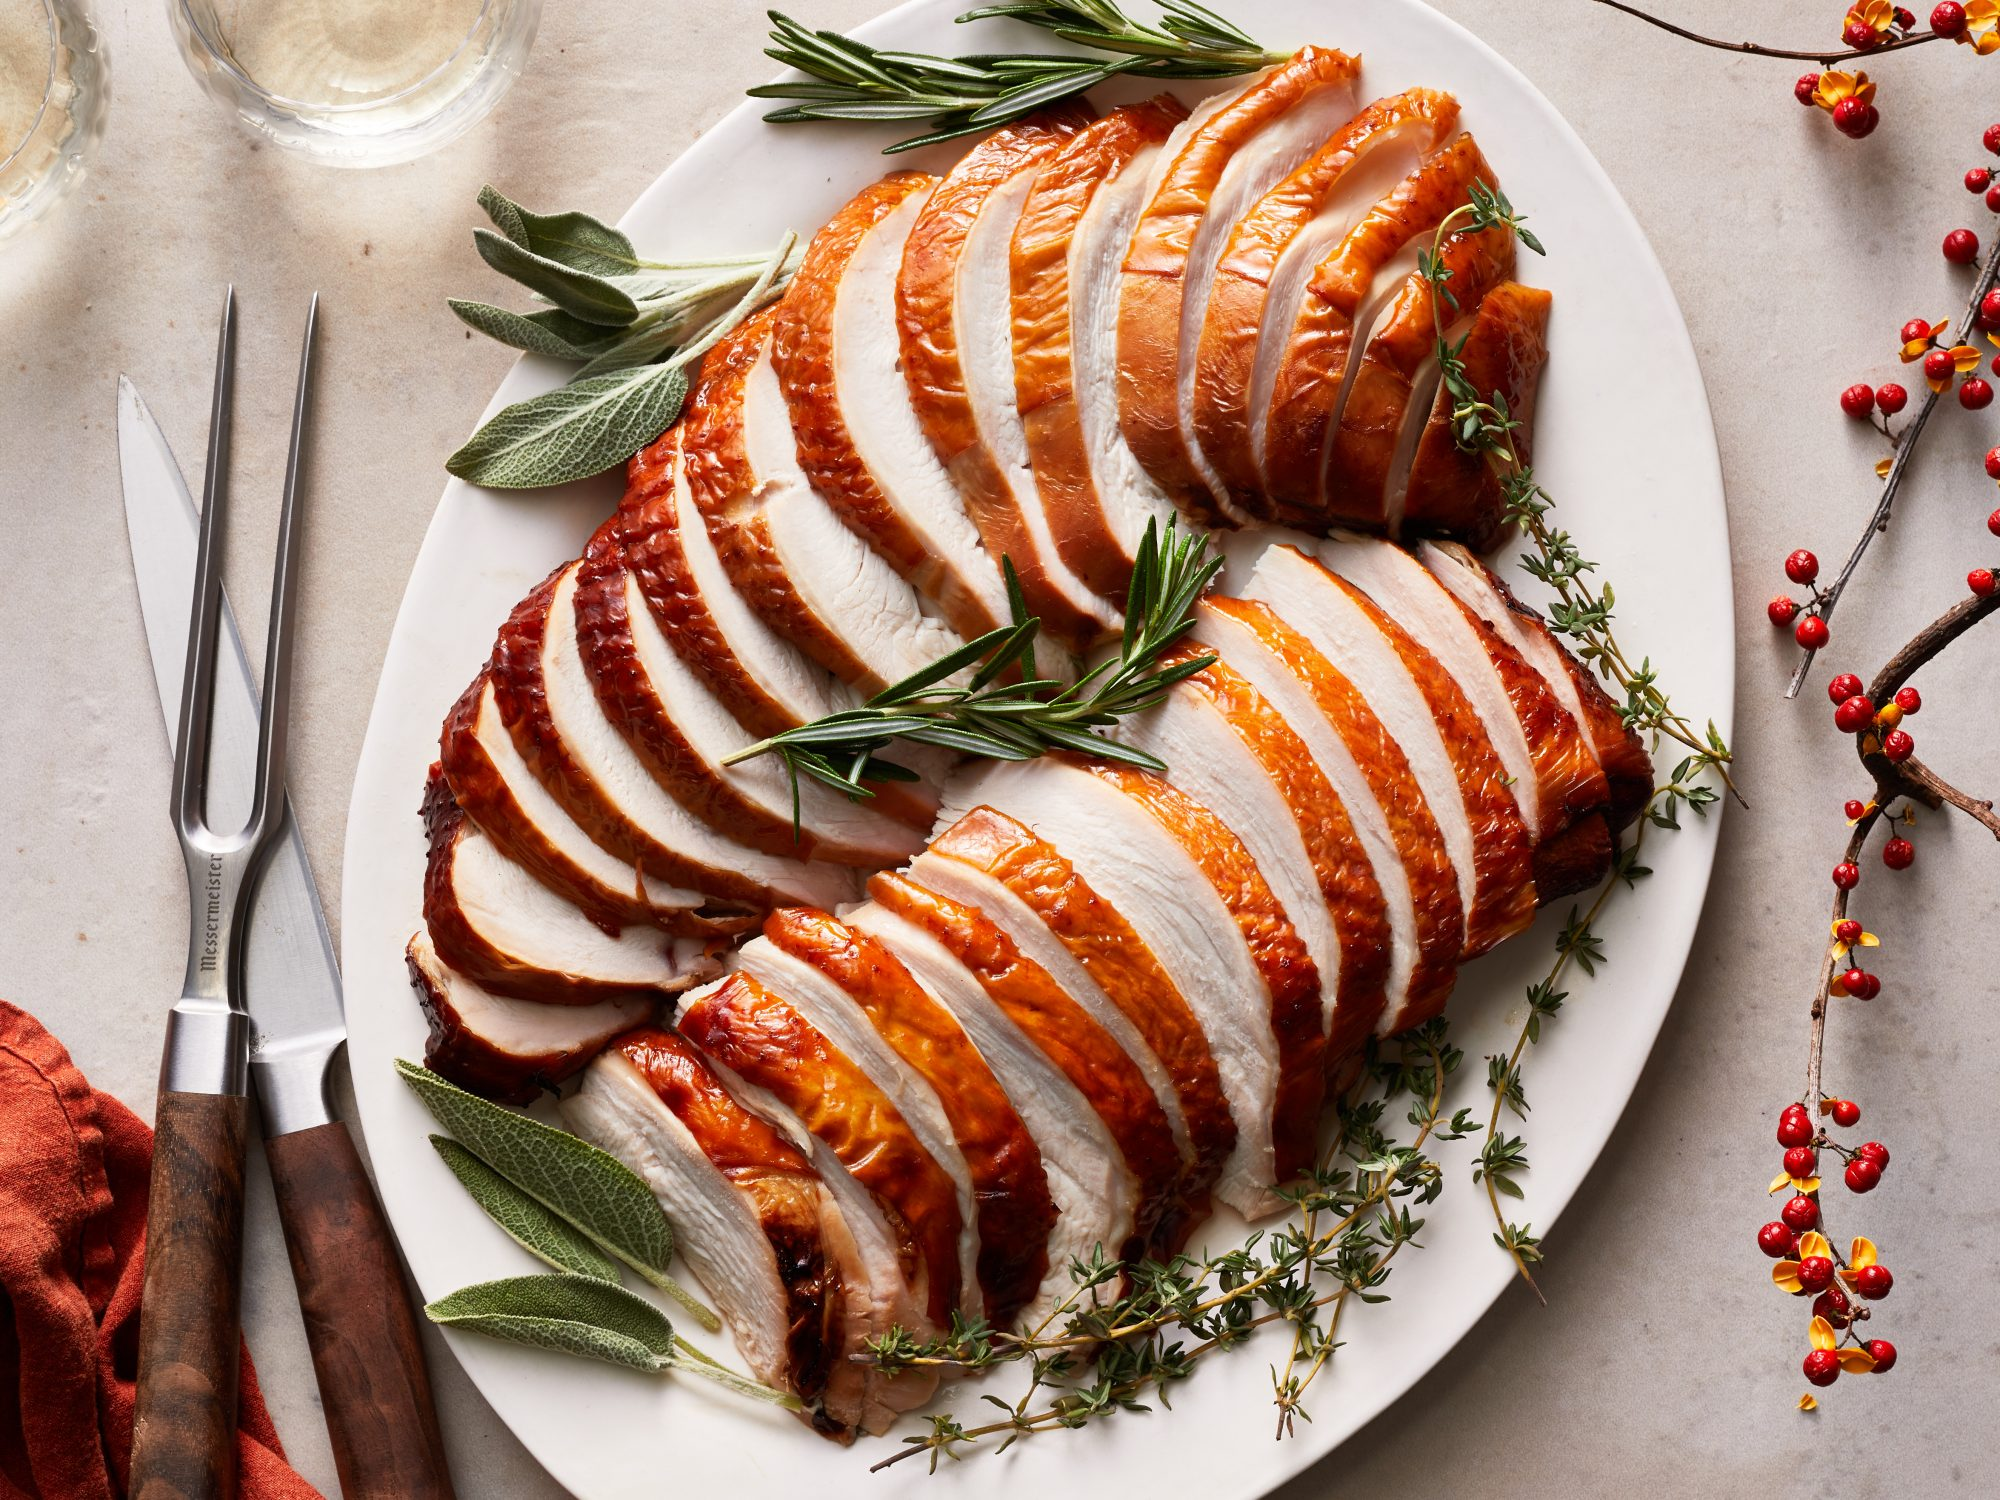 Sliced, smoked turkey breast arranged on a white serving platter with herbs.